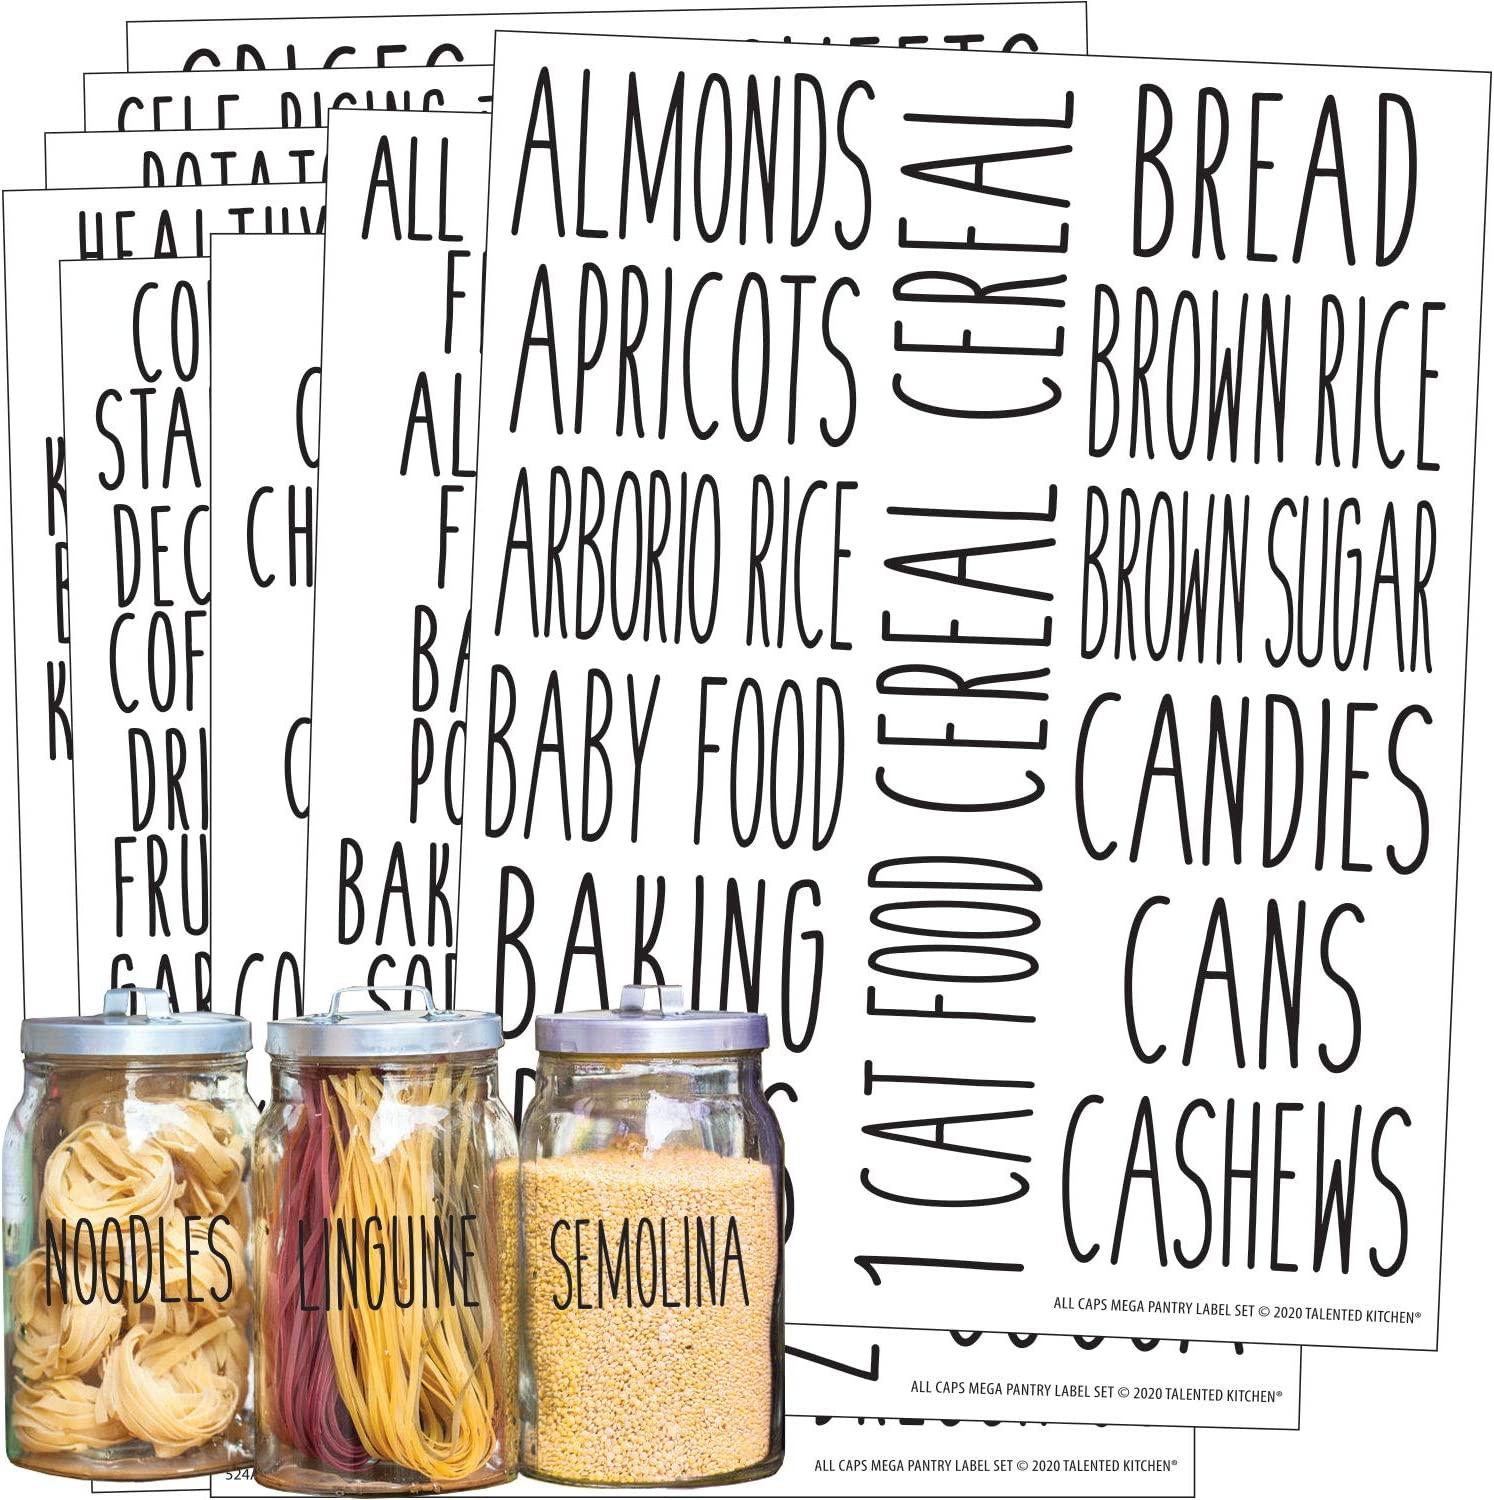 Talented Kitchen 136 All Caps Pantry Labels – 136 Main Ingredients – Food Pantry Label Sticker. Water Resistant Food Jar Labels. Jar Decals Pantry Organization Storage (Set of 136 – All Caps Pantry)